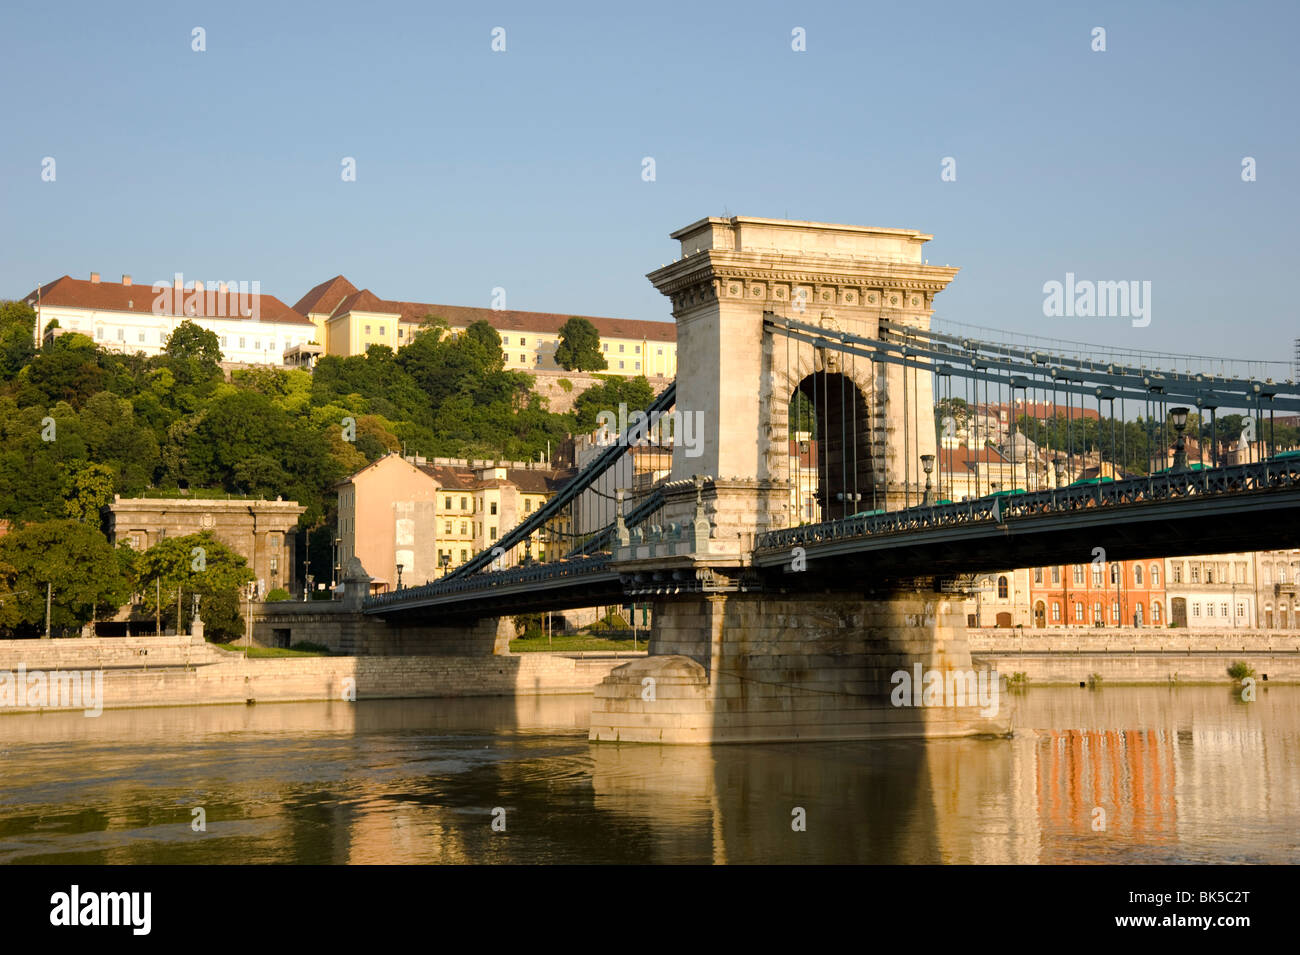 Early morning sailing under the Chain Bridge over the Danube River, Budapest, Hungary, Europe - Stock Image